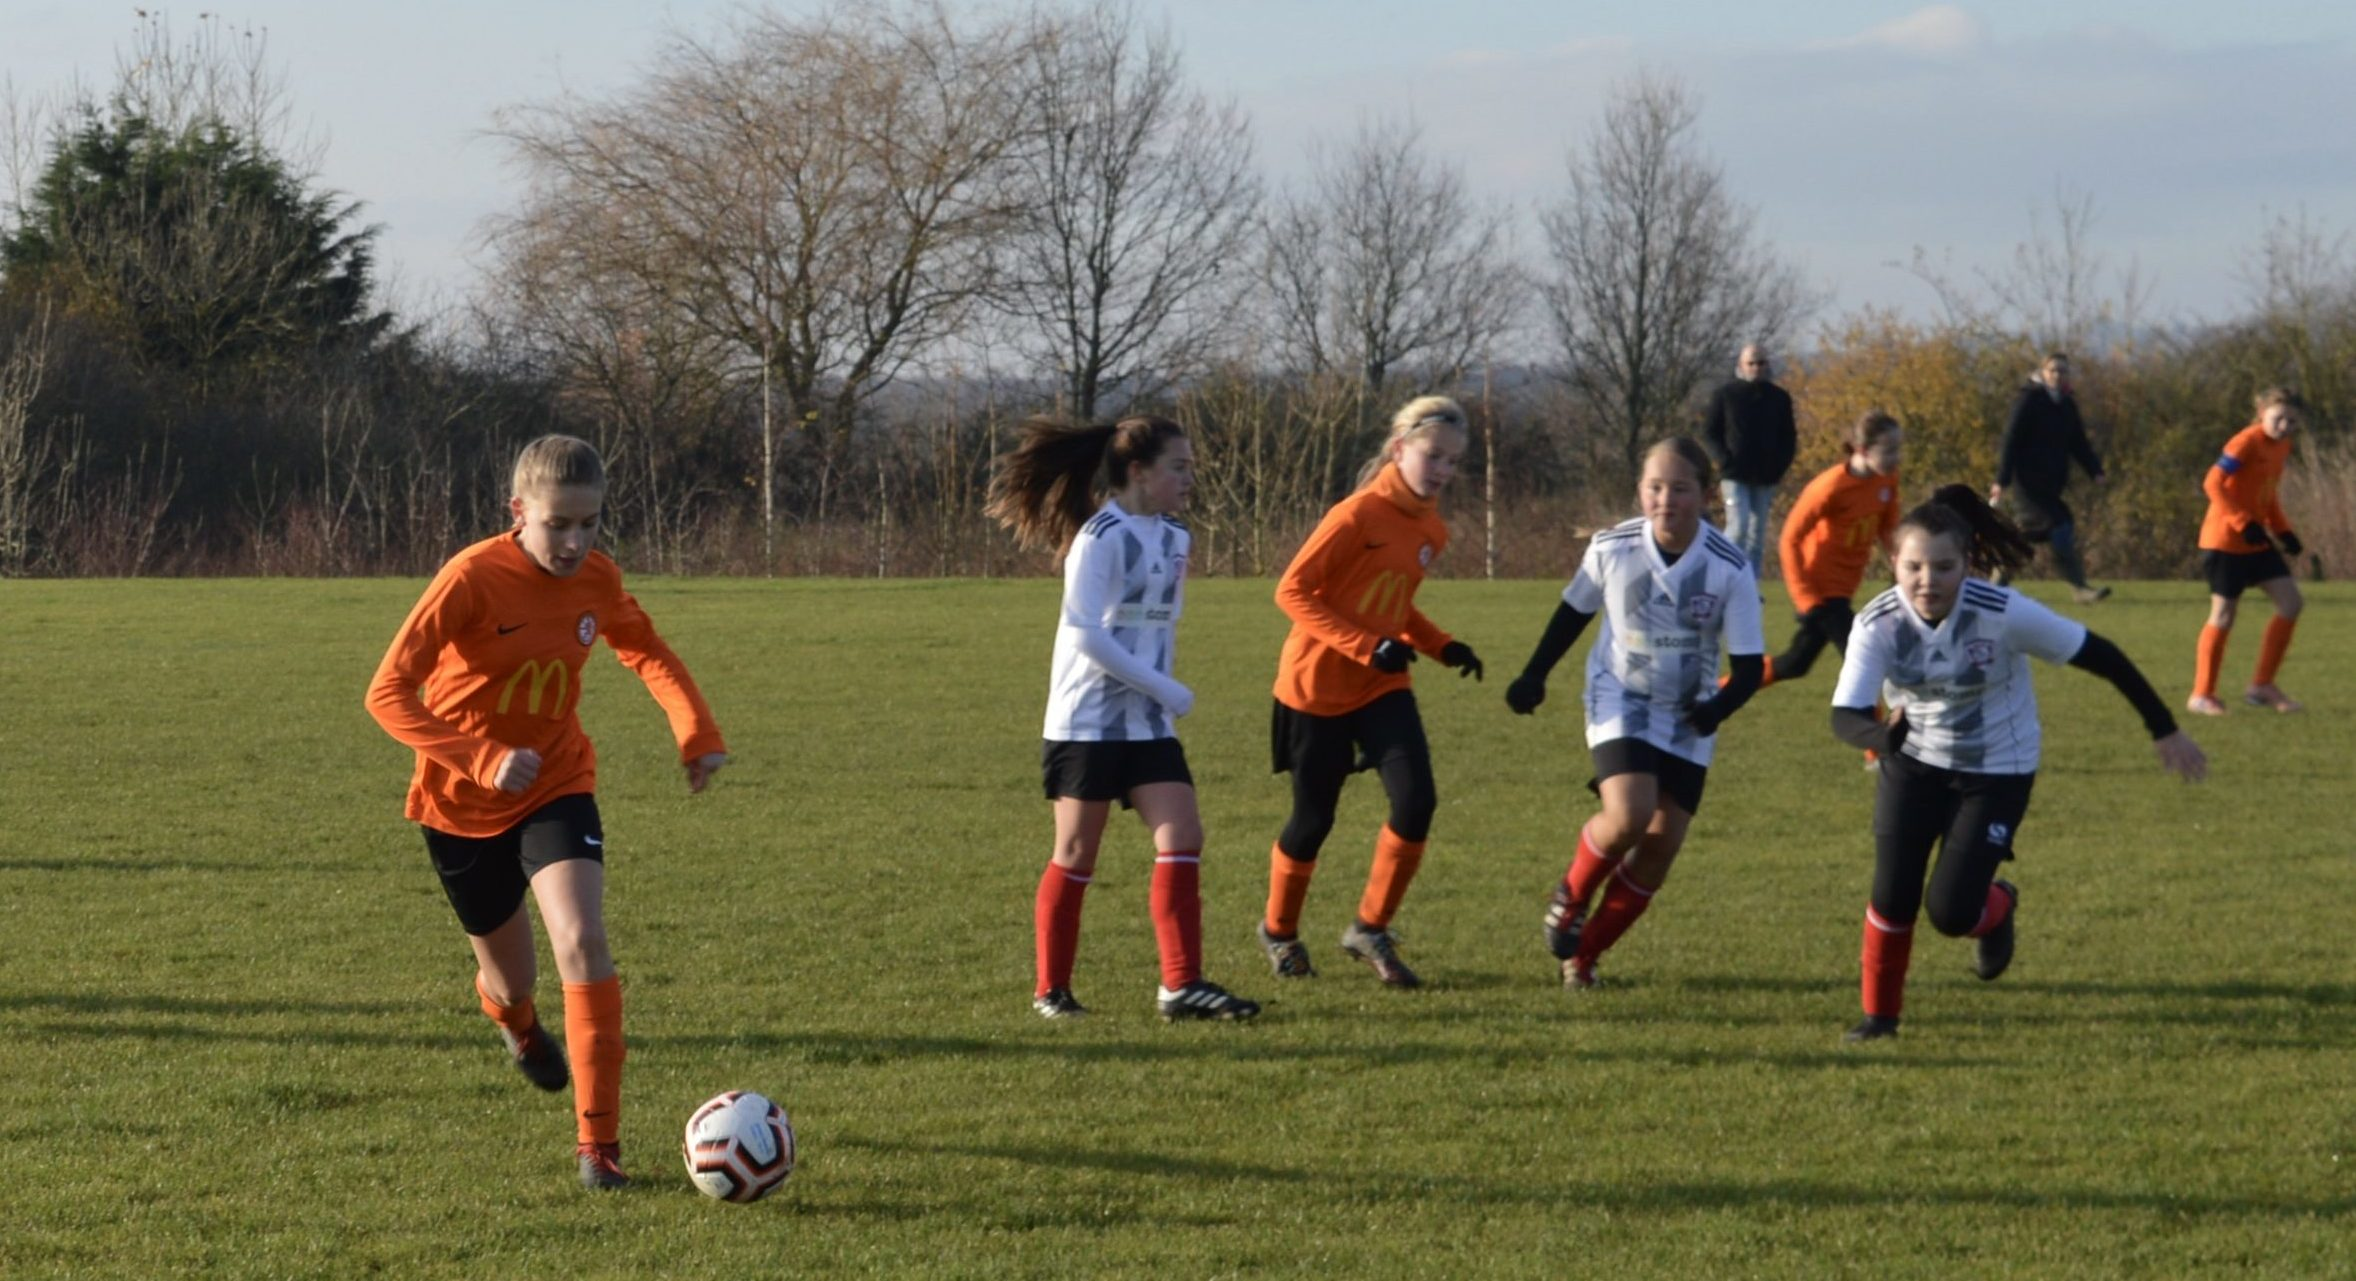 Rugby Borough Girls U12s v Cosby United Youth Girls U12s - Match Photo